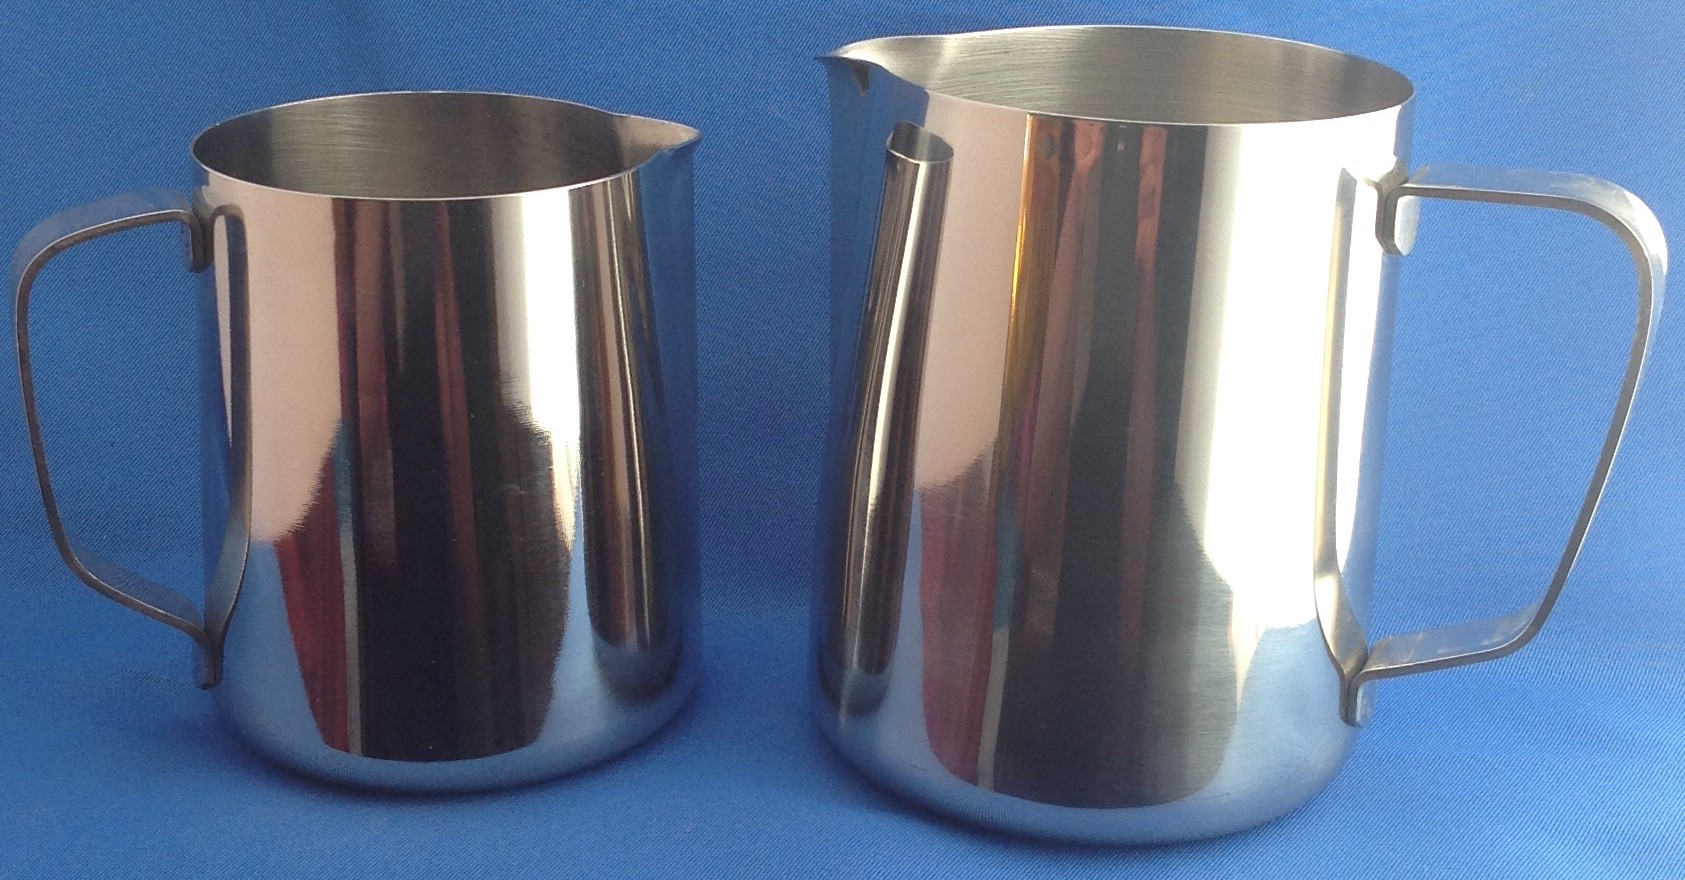 Coffee Maker Stainless Steel Jug : More Than CoffeeStainless Steel Frothing Jug 0.6 litre